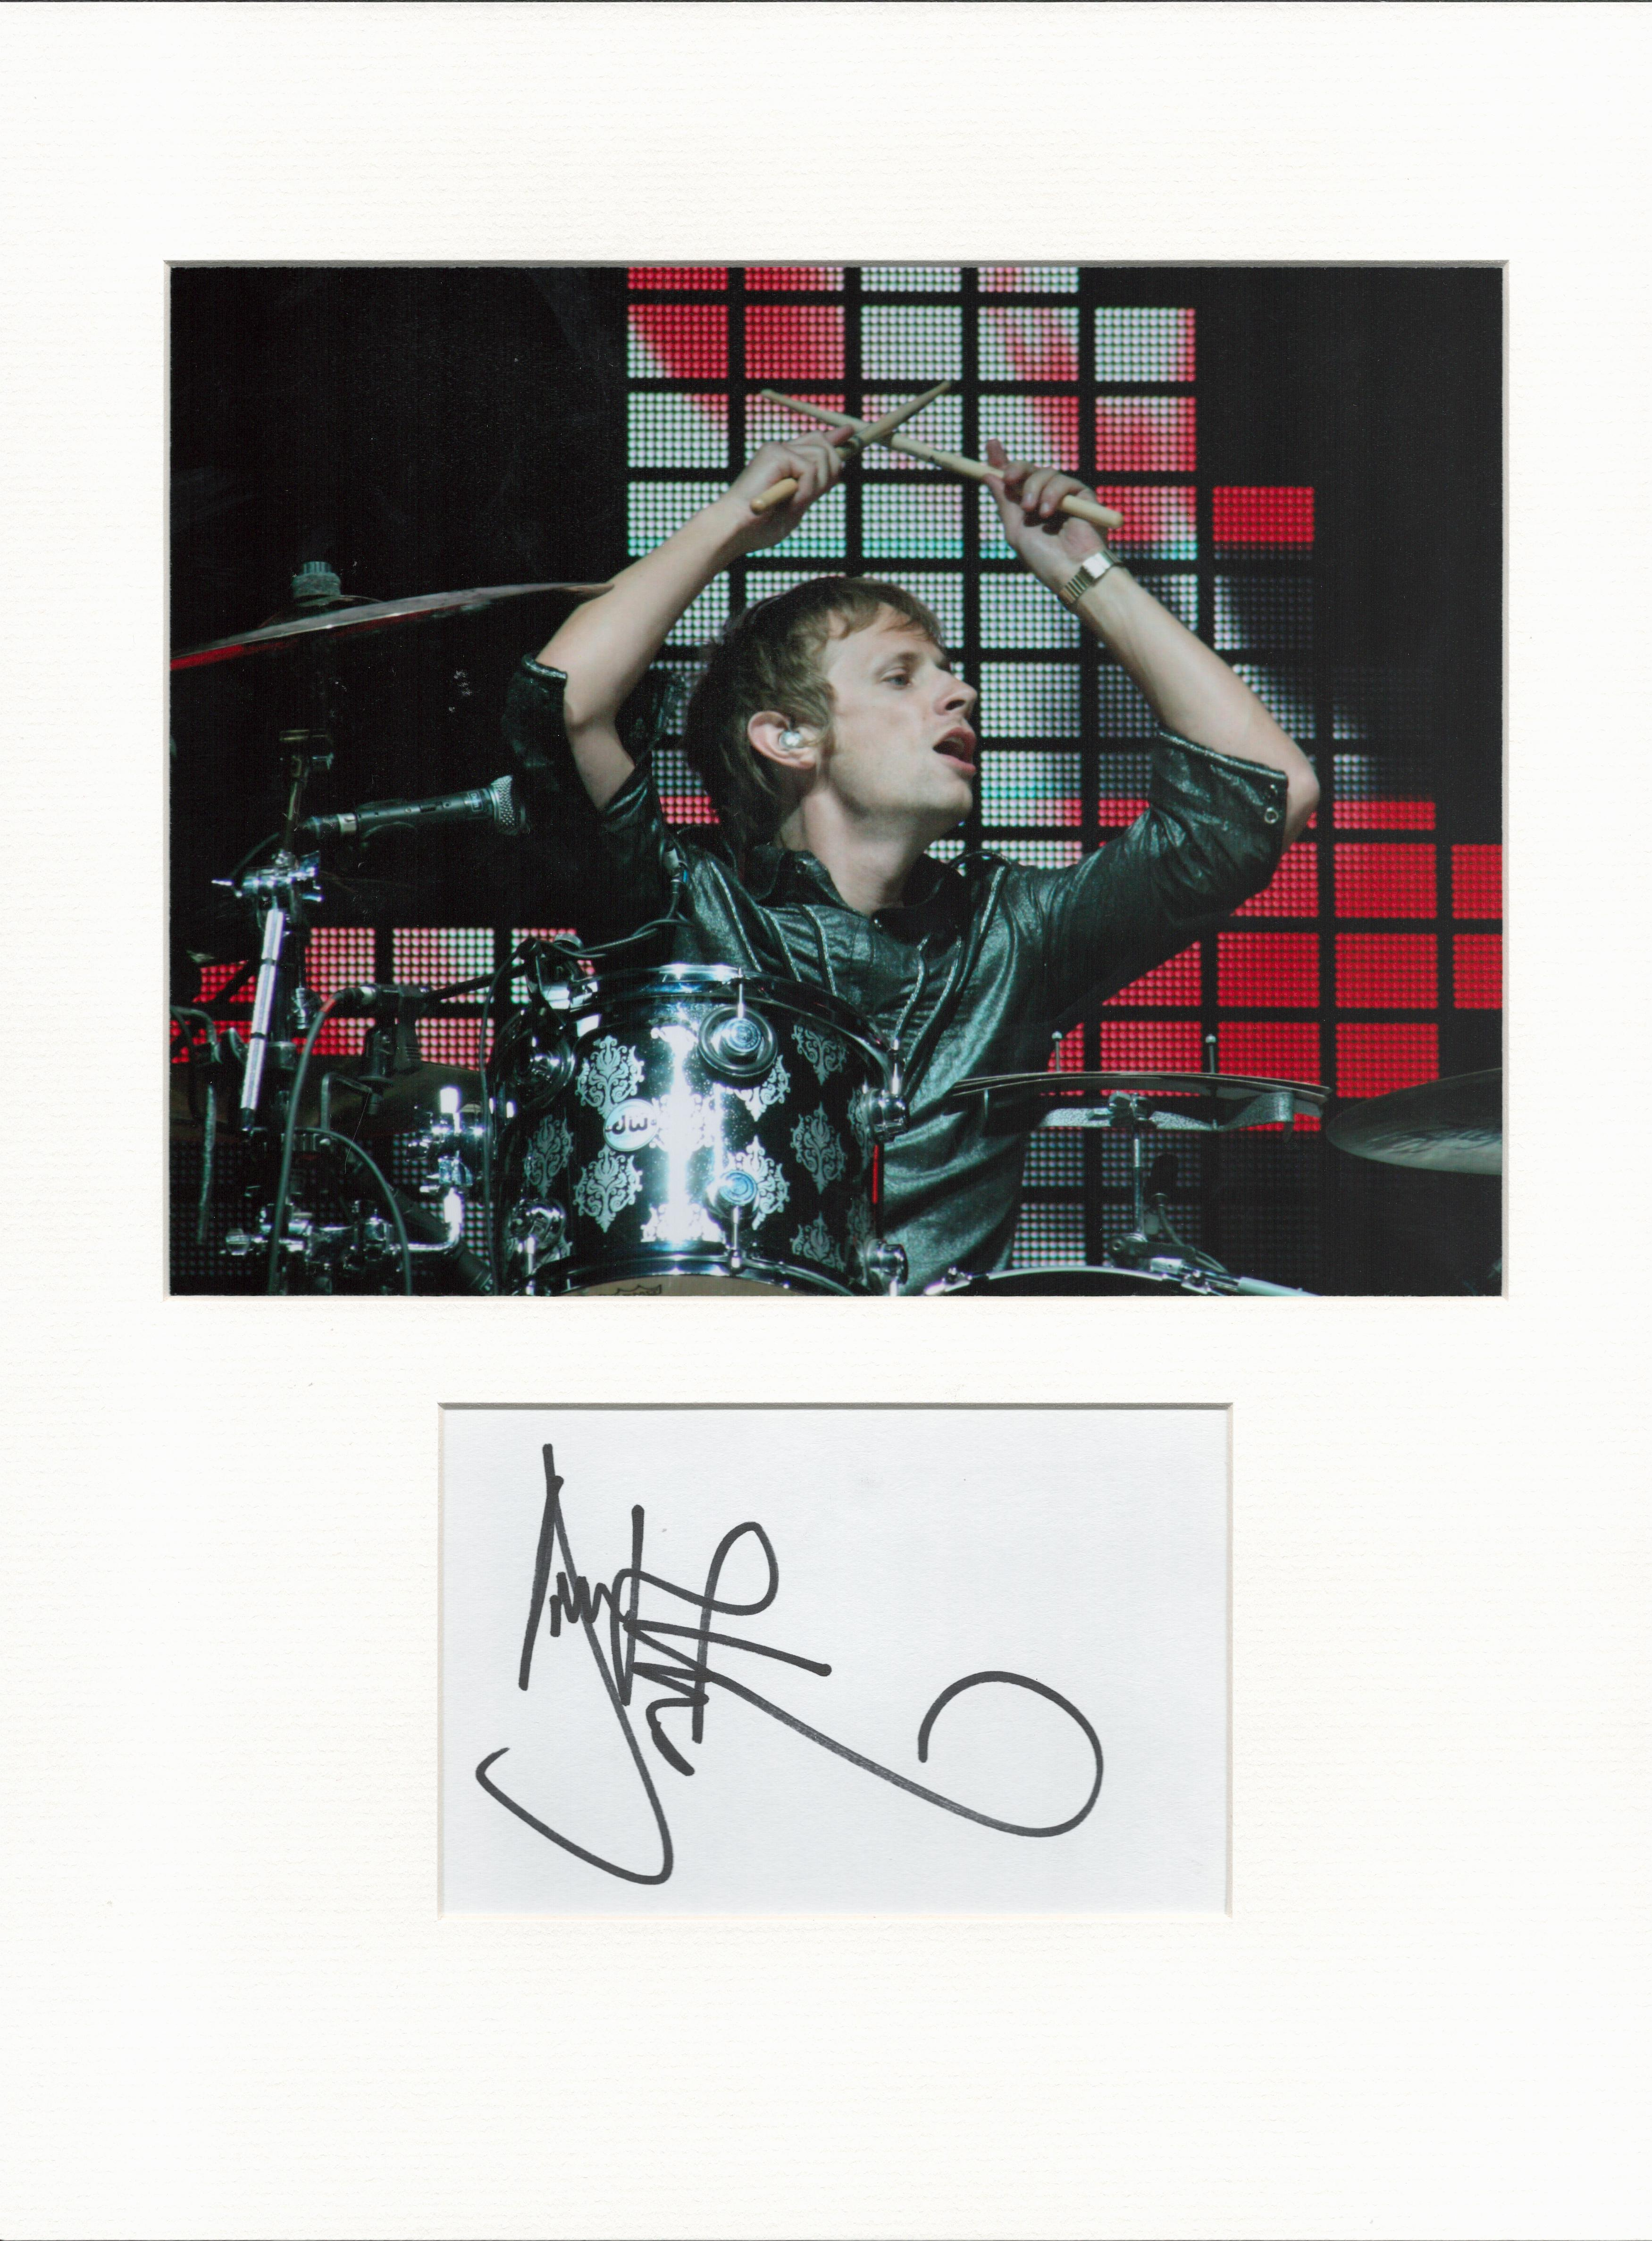 Dominic Howard (Muse) signature piece in autograph presentation. Mounted with photograph to